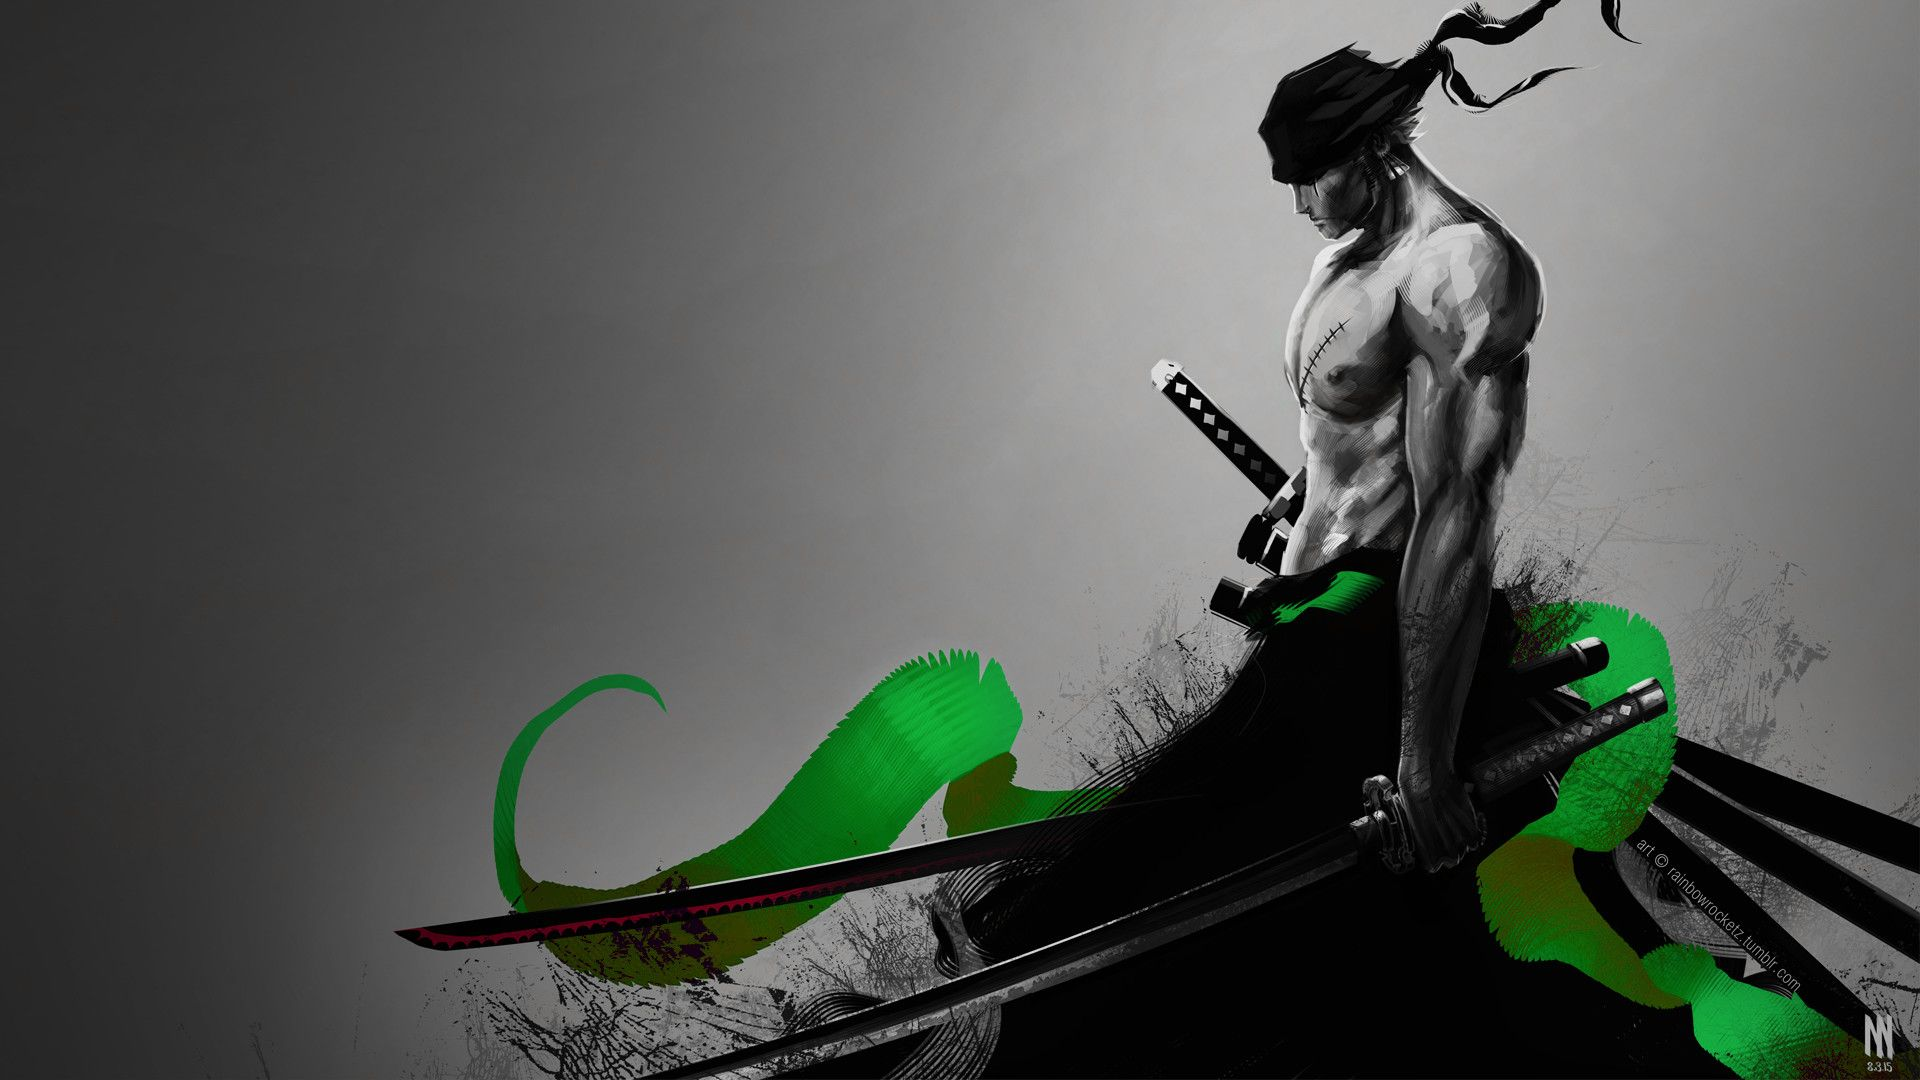 Zoro Hd Wallpapers Top Free Zoro Hd Backgrounds Wallpaperaccess